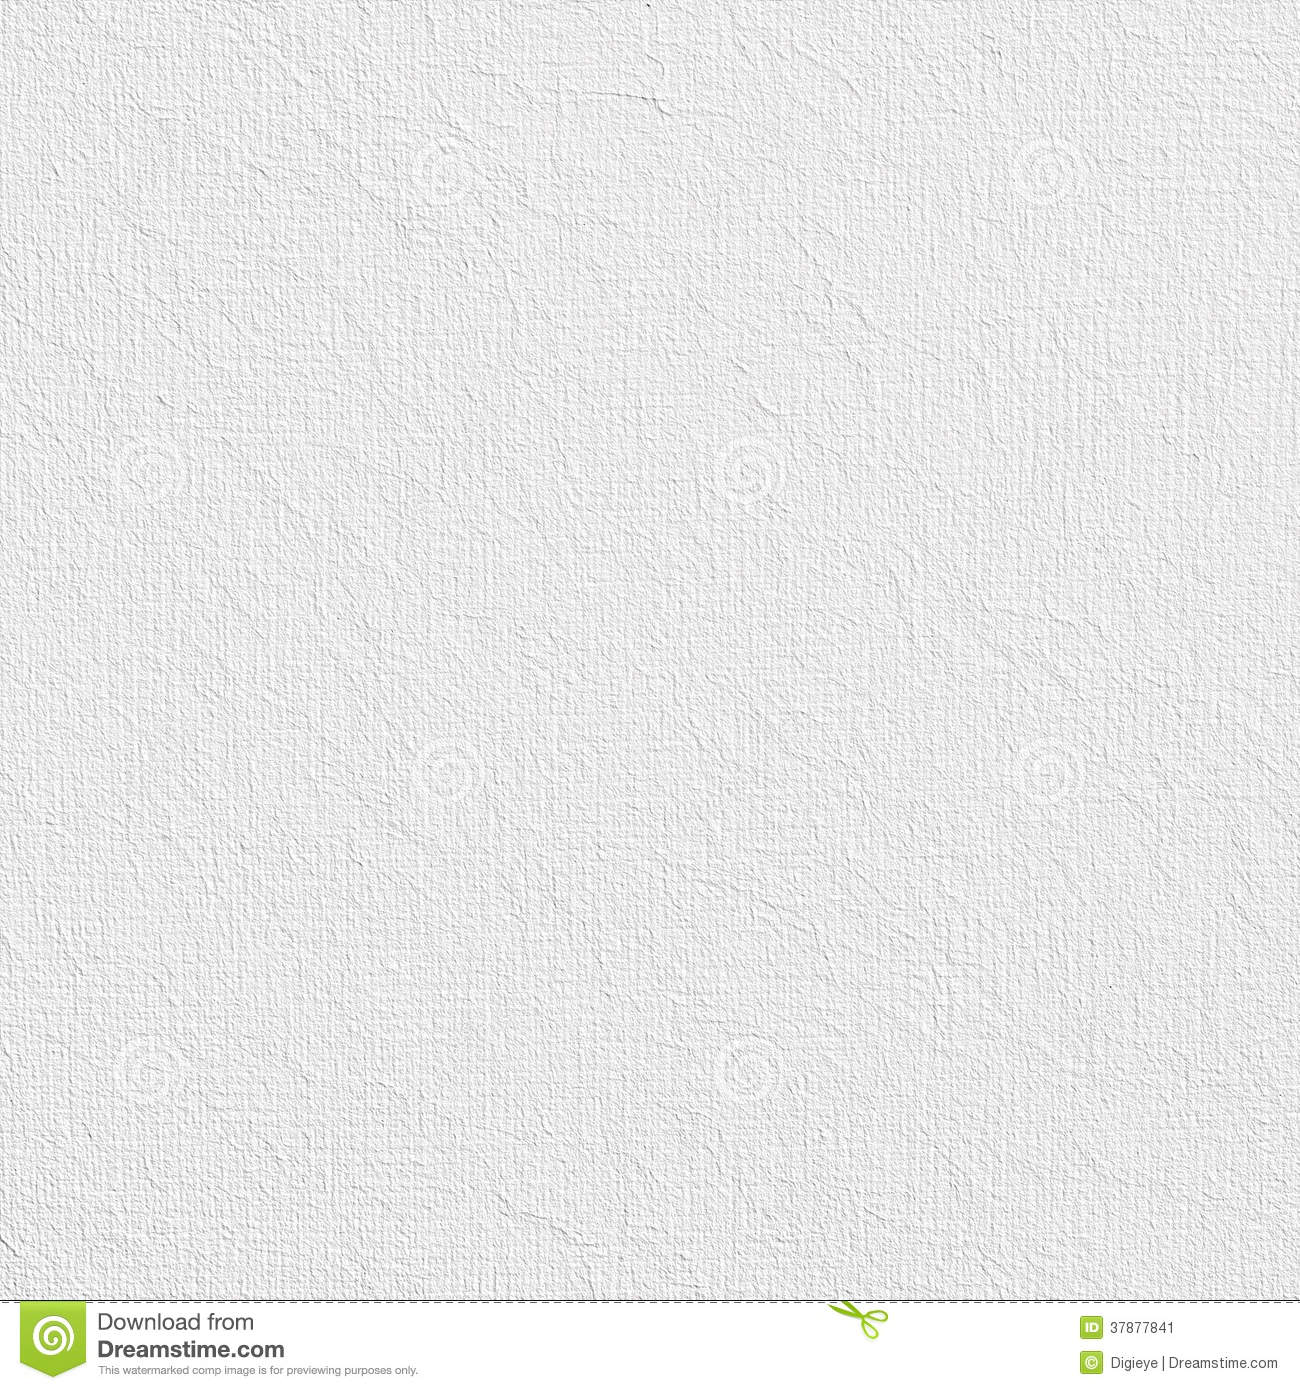 Crumpled paper or plastered wall background